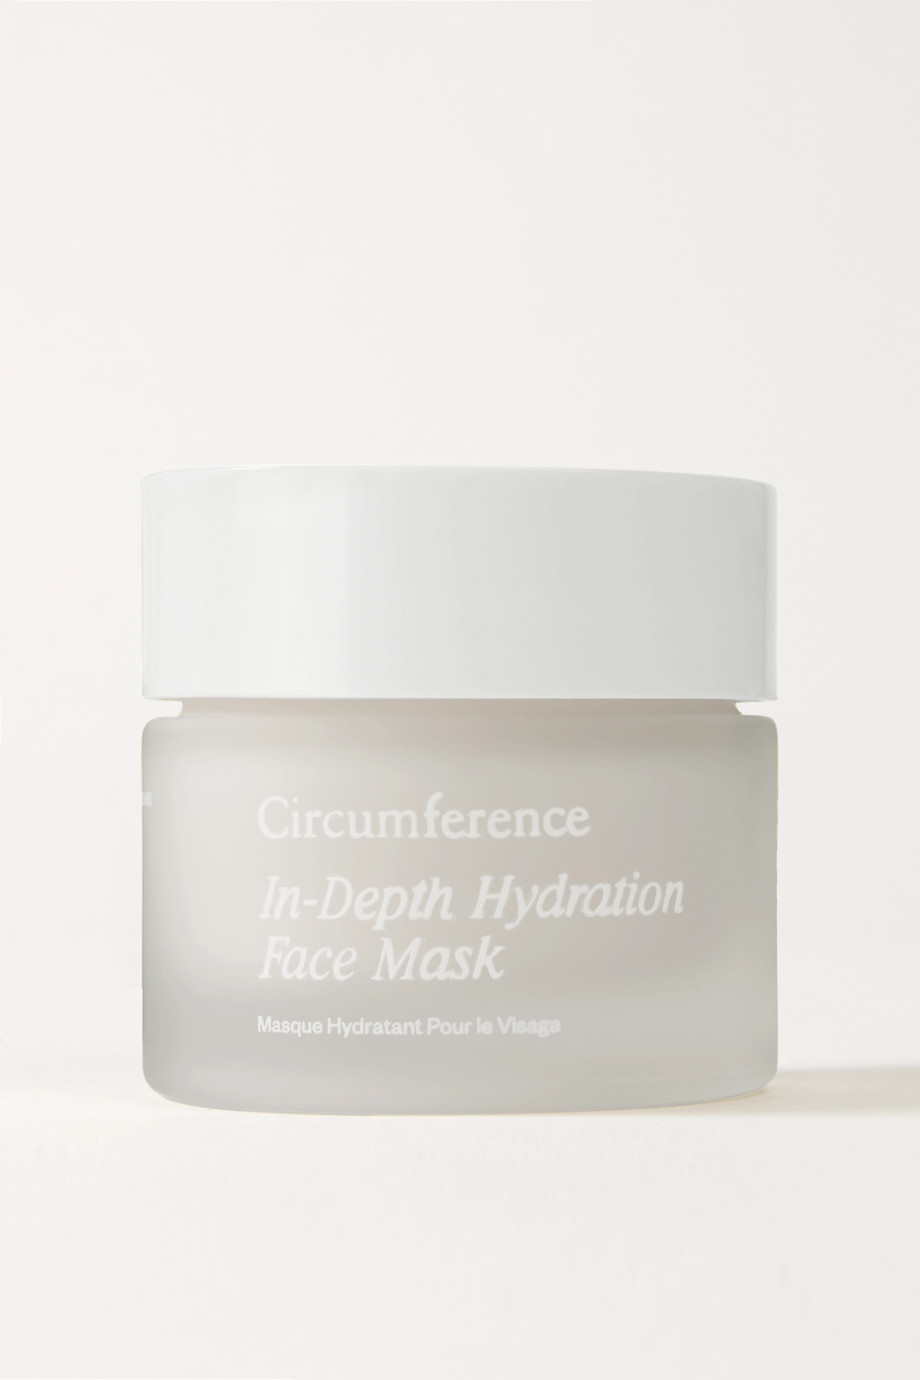 Circumference Masque hydratant pour le visage In-Depth, 50 ml